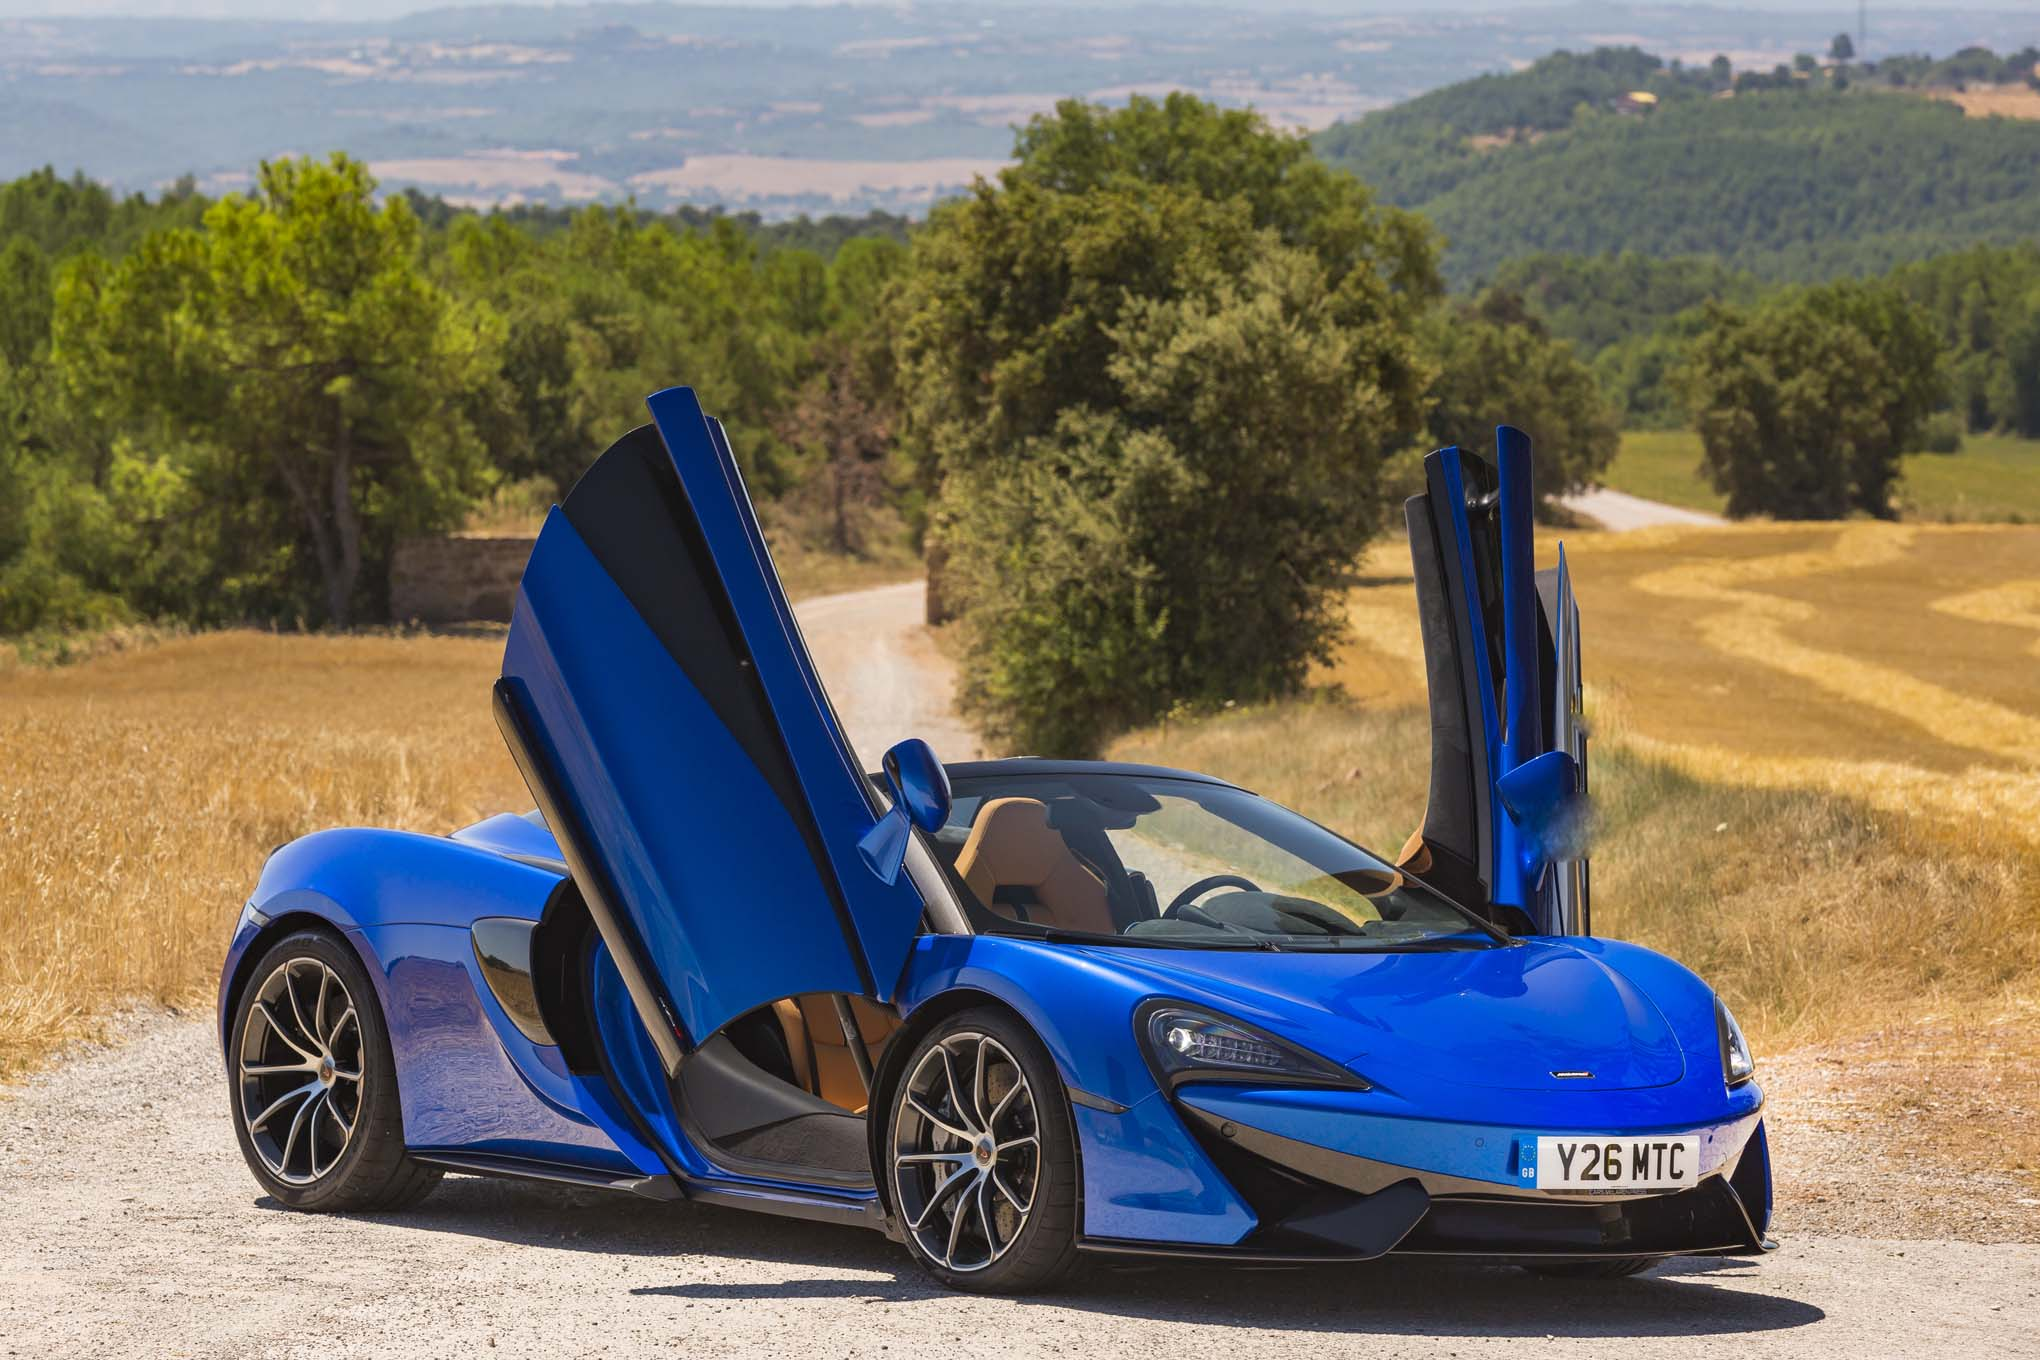 2018 mclaren 570s. Wonderful Mclaren Show More For 2018 Mclaren 570s N